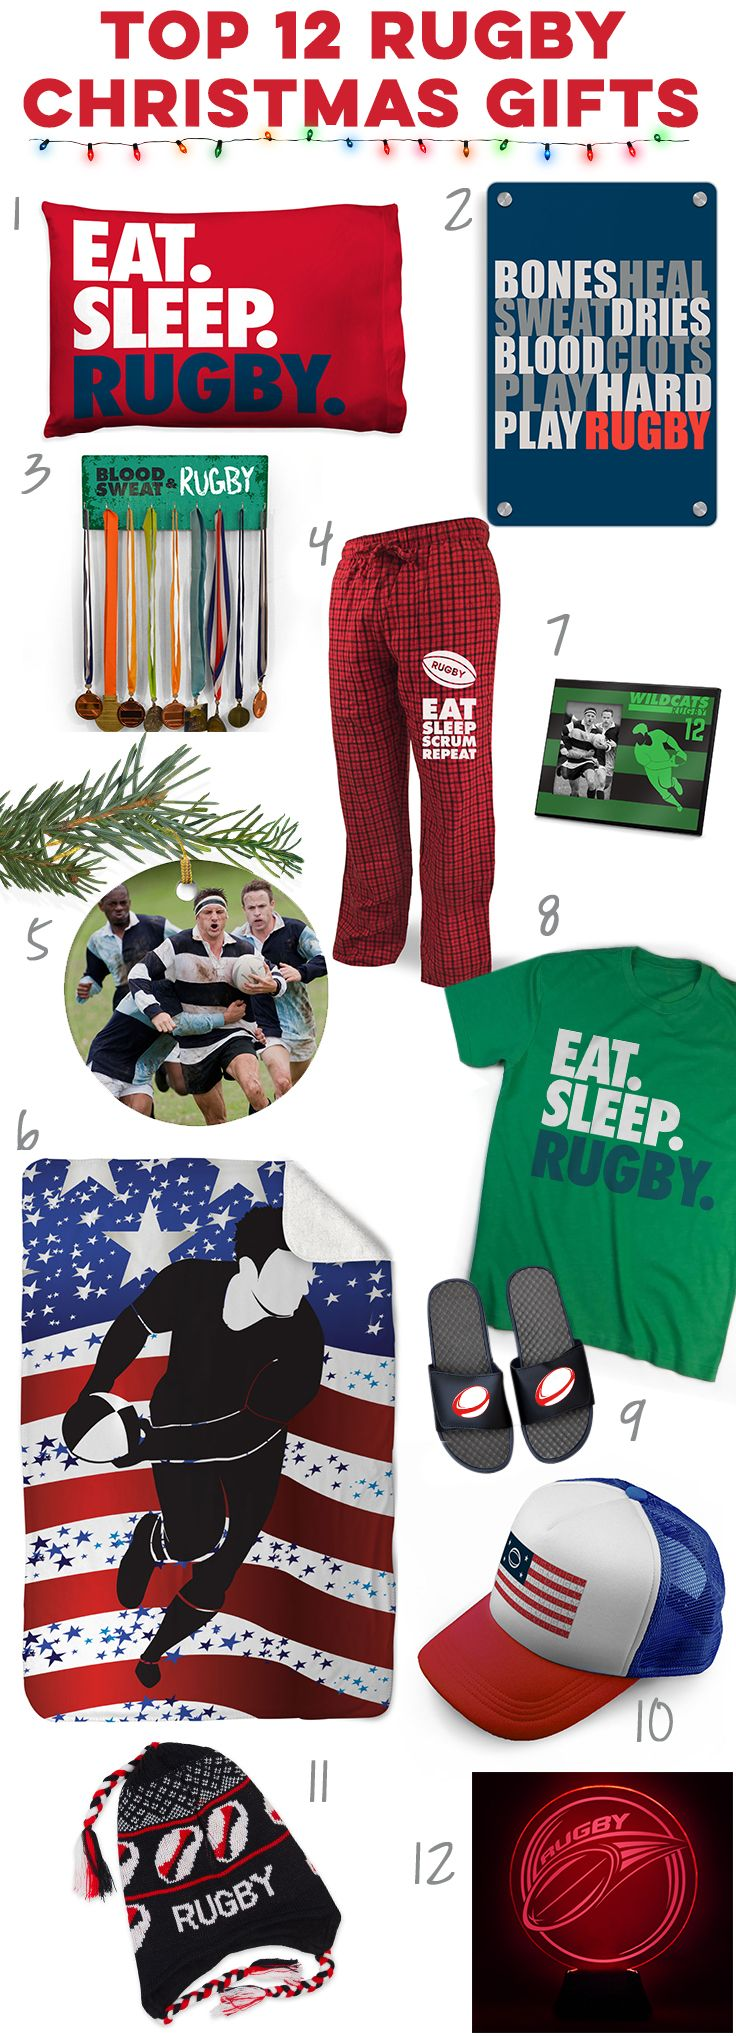 Check Out These Great Holiday Rugby Gift Ideas Click To See More Details On Our Top 12 Rugby Player Gift Id Rugby Gifts Unique Christmas Gifts Gifts